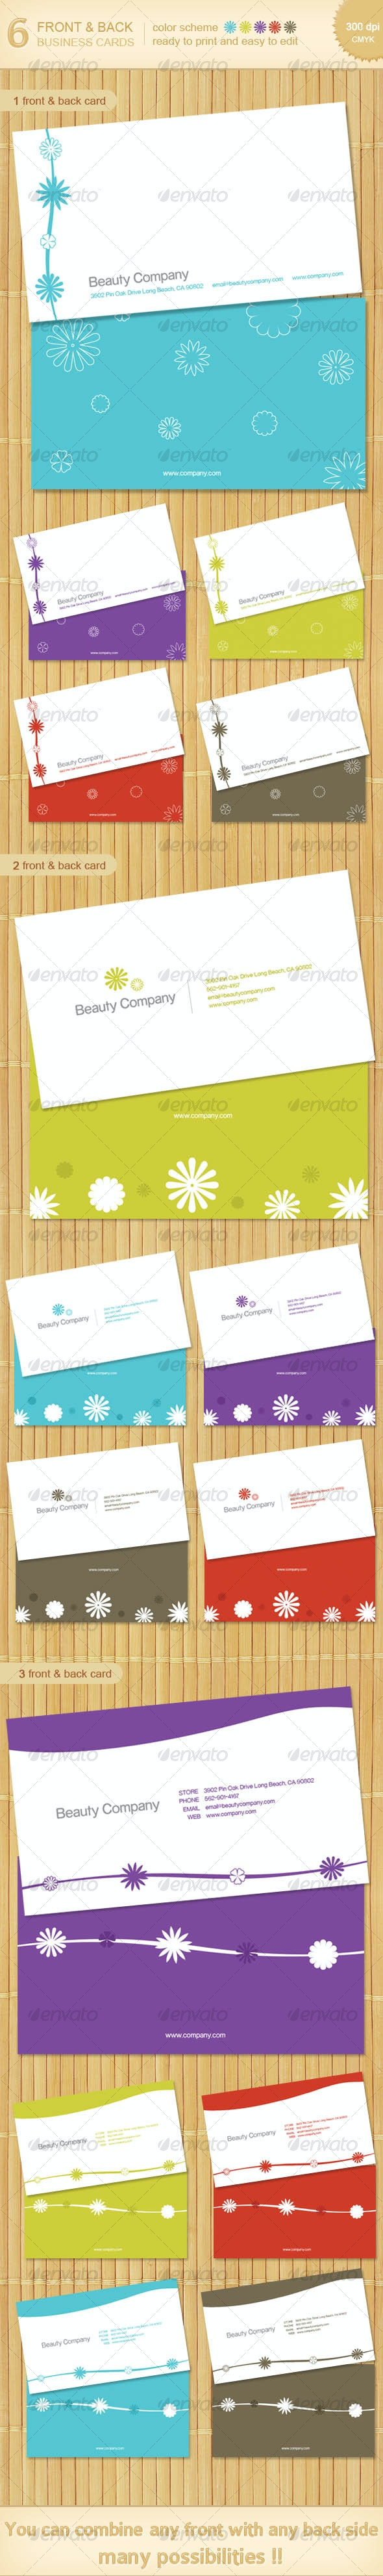 6 Beauty business cards - 5 color scheme! - Creative Business Cards